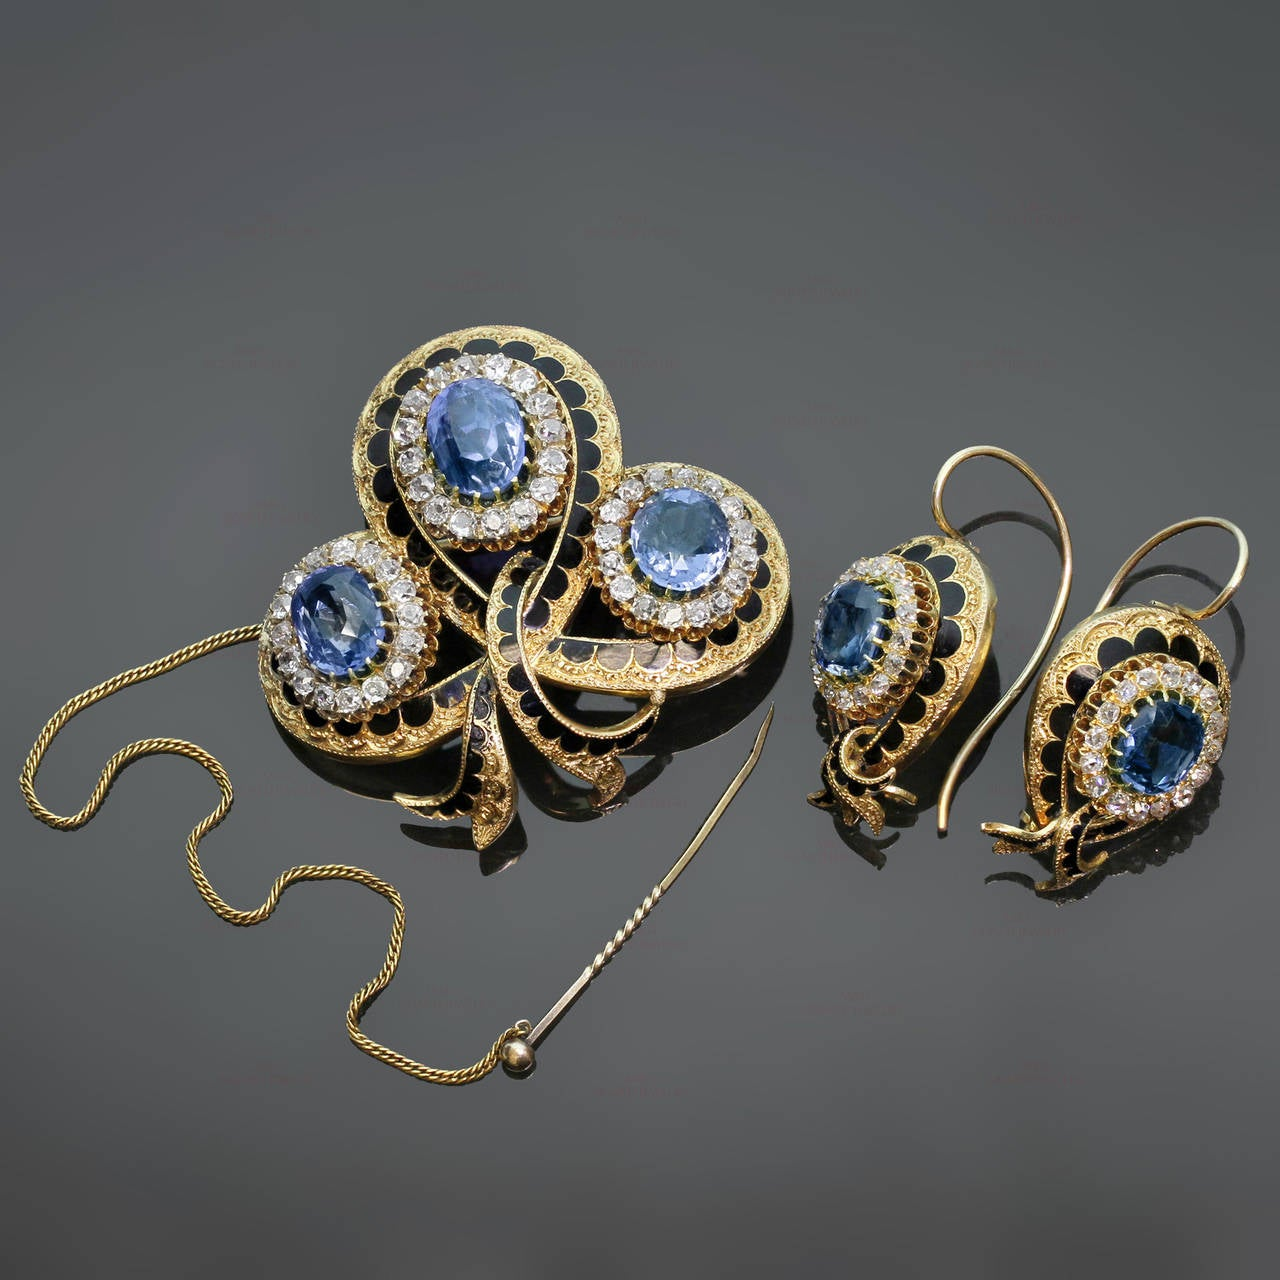 This magnificent Victorian jewelry suite consists of a pendant-brooch and a pair of earrings featuring an intricate filigree design hand-crafted in 18k yellow gold and contrasted with black enamel. This suite is beautifully prong-set with natural